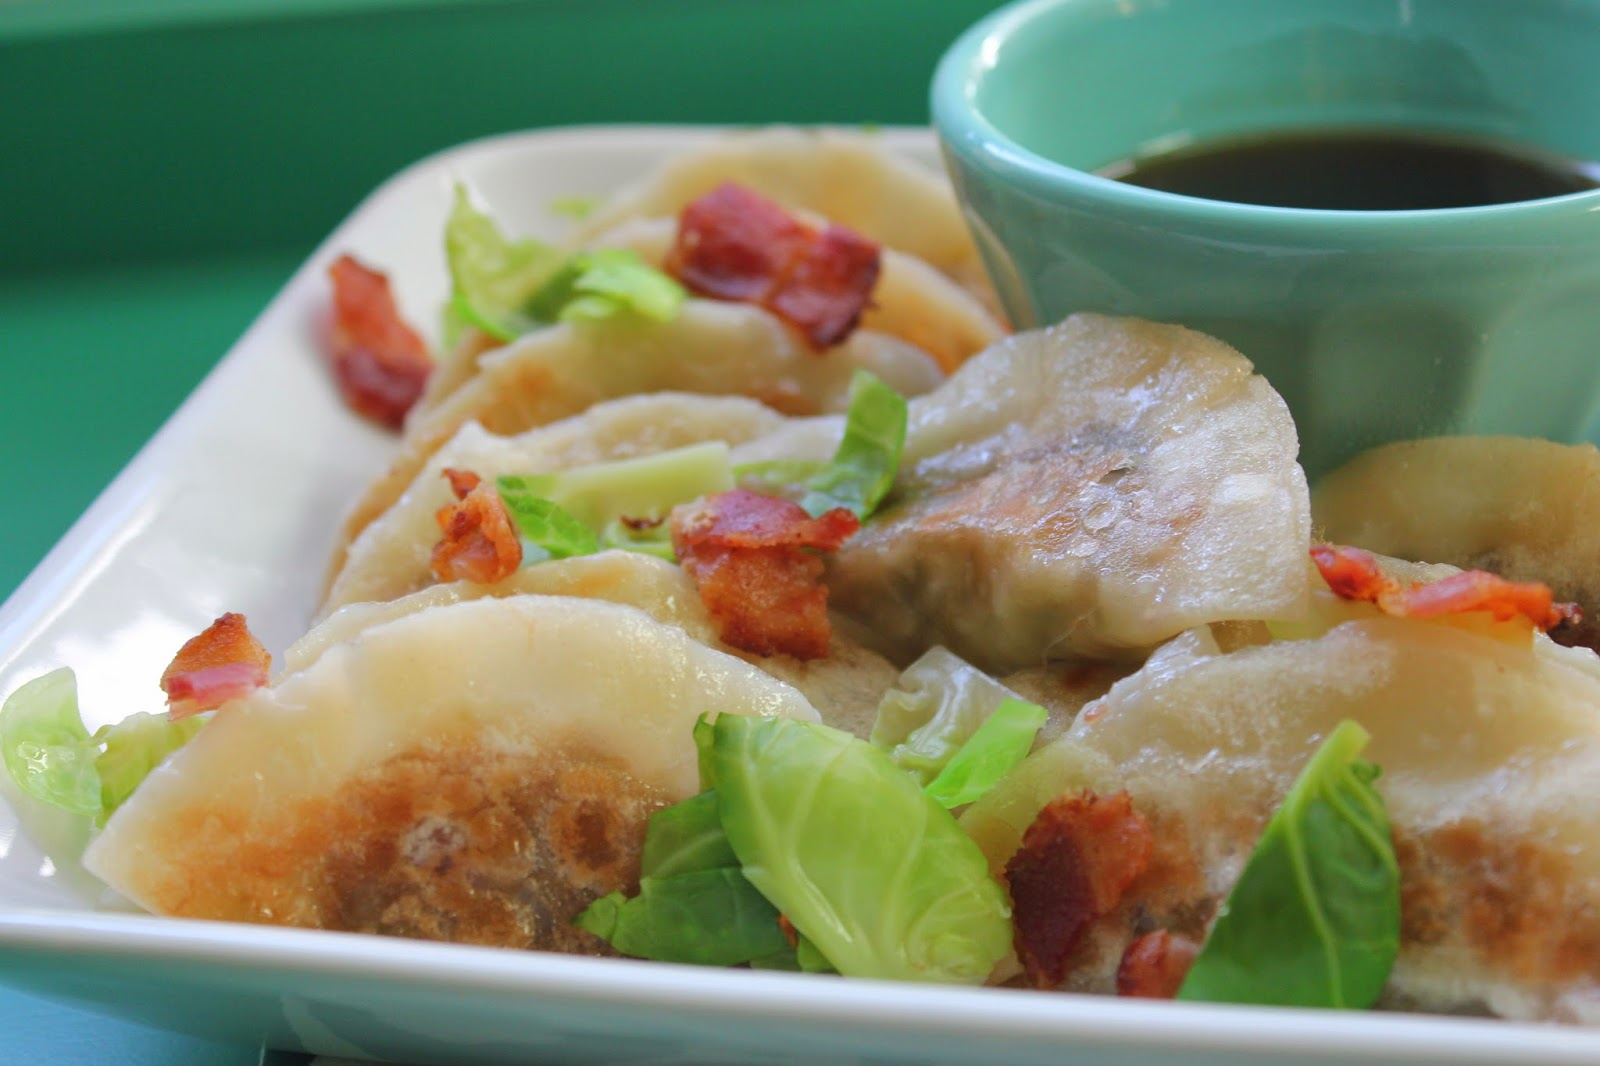 Brussels sprouts and bacon dumplings from Dumplings All Day Wong